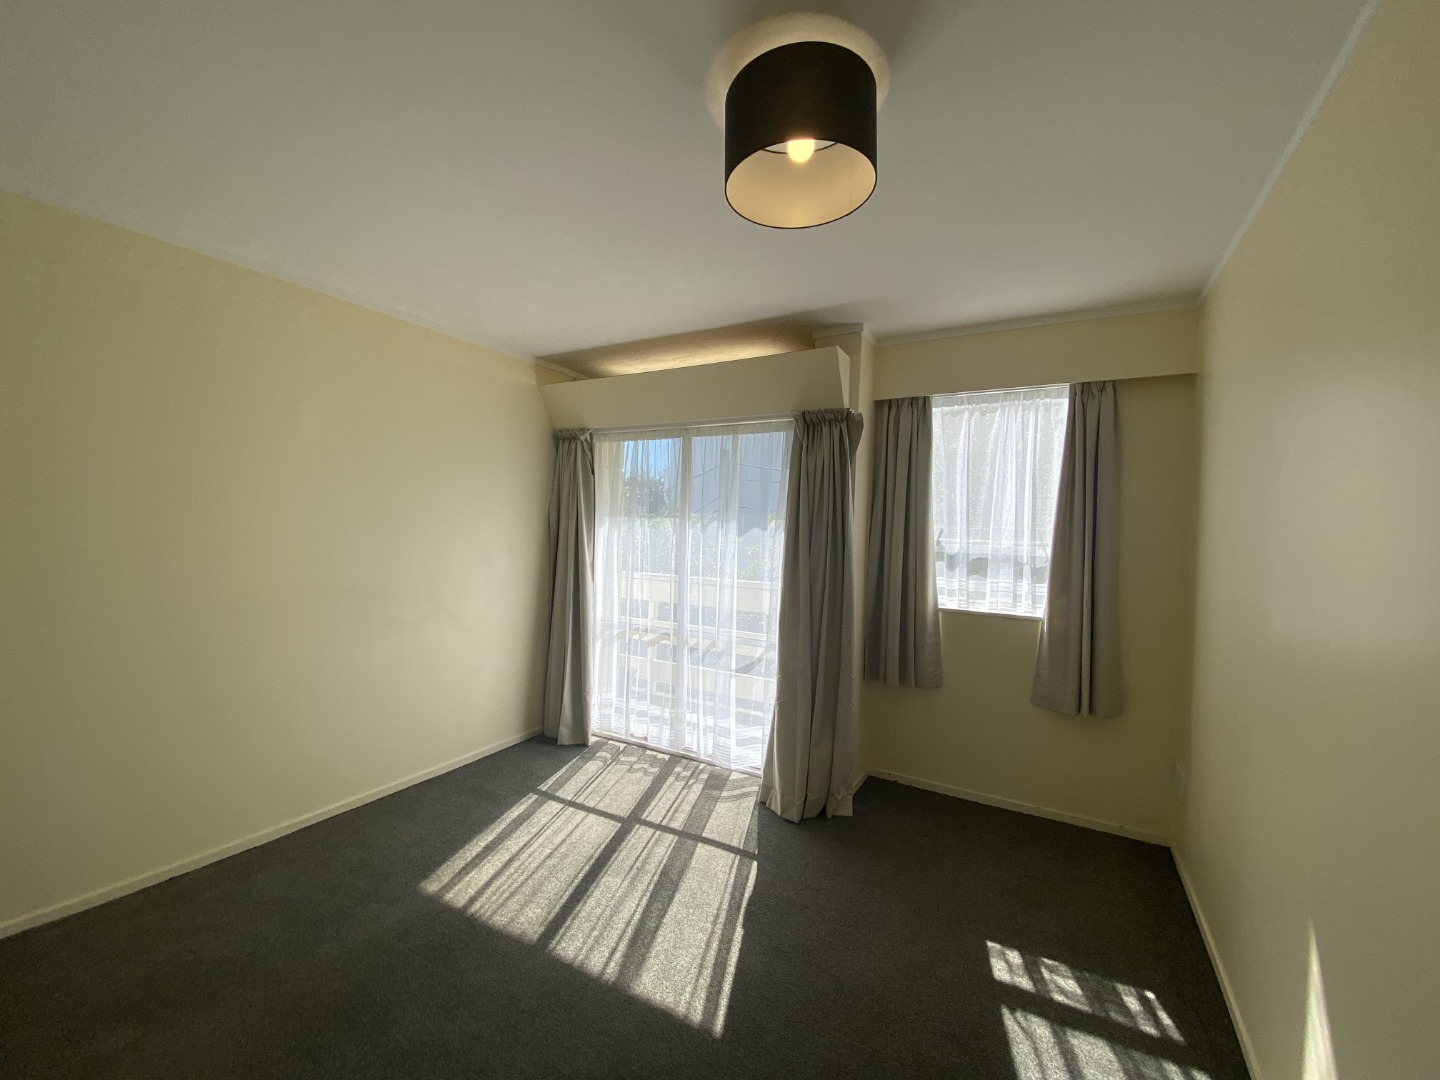 Real estate For rent Houses & apartments : Central As you get - One bed apartment, Wellington